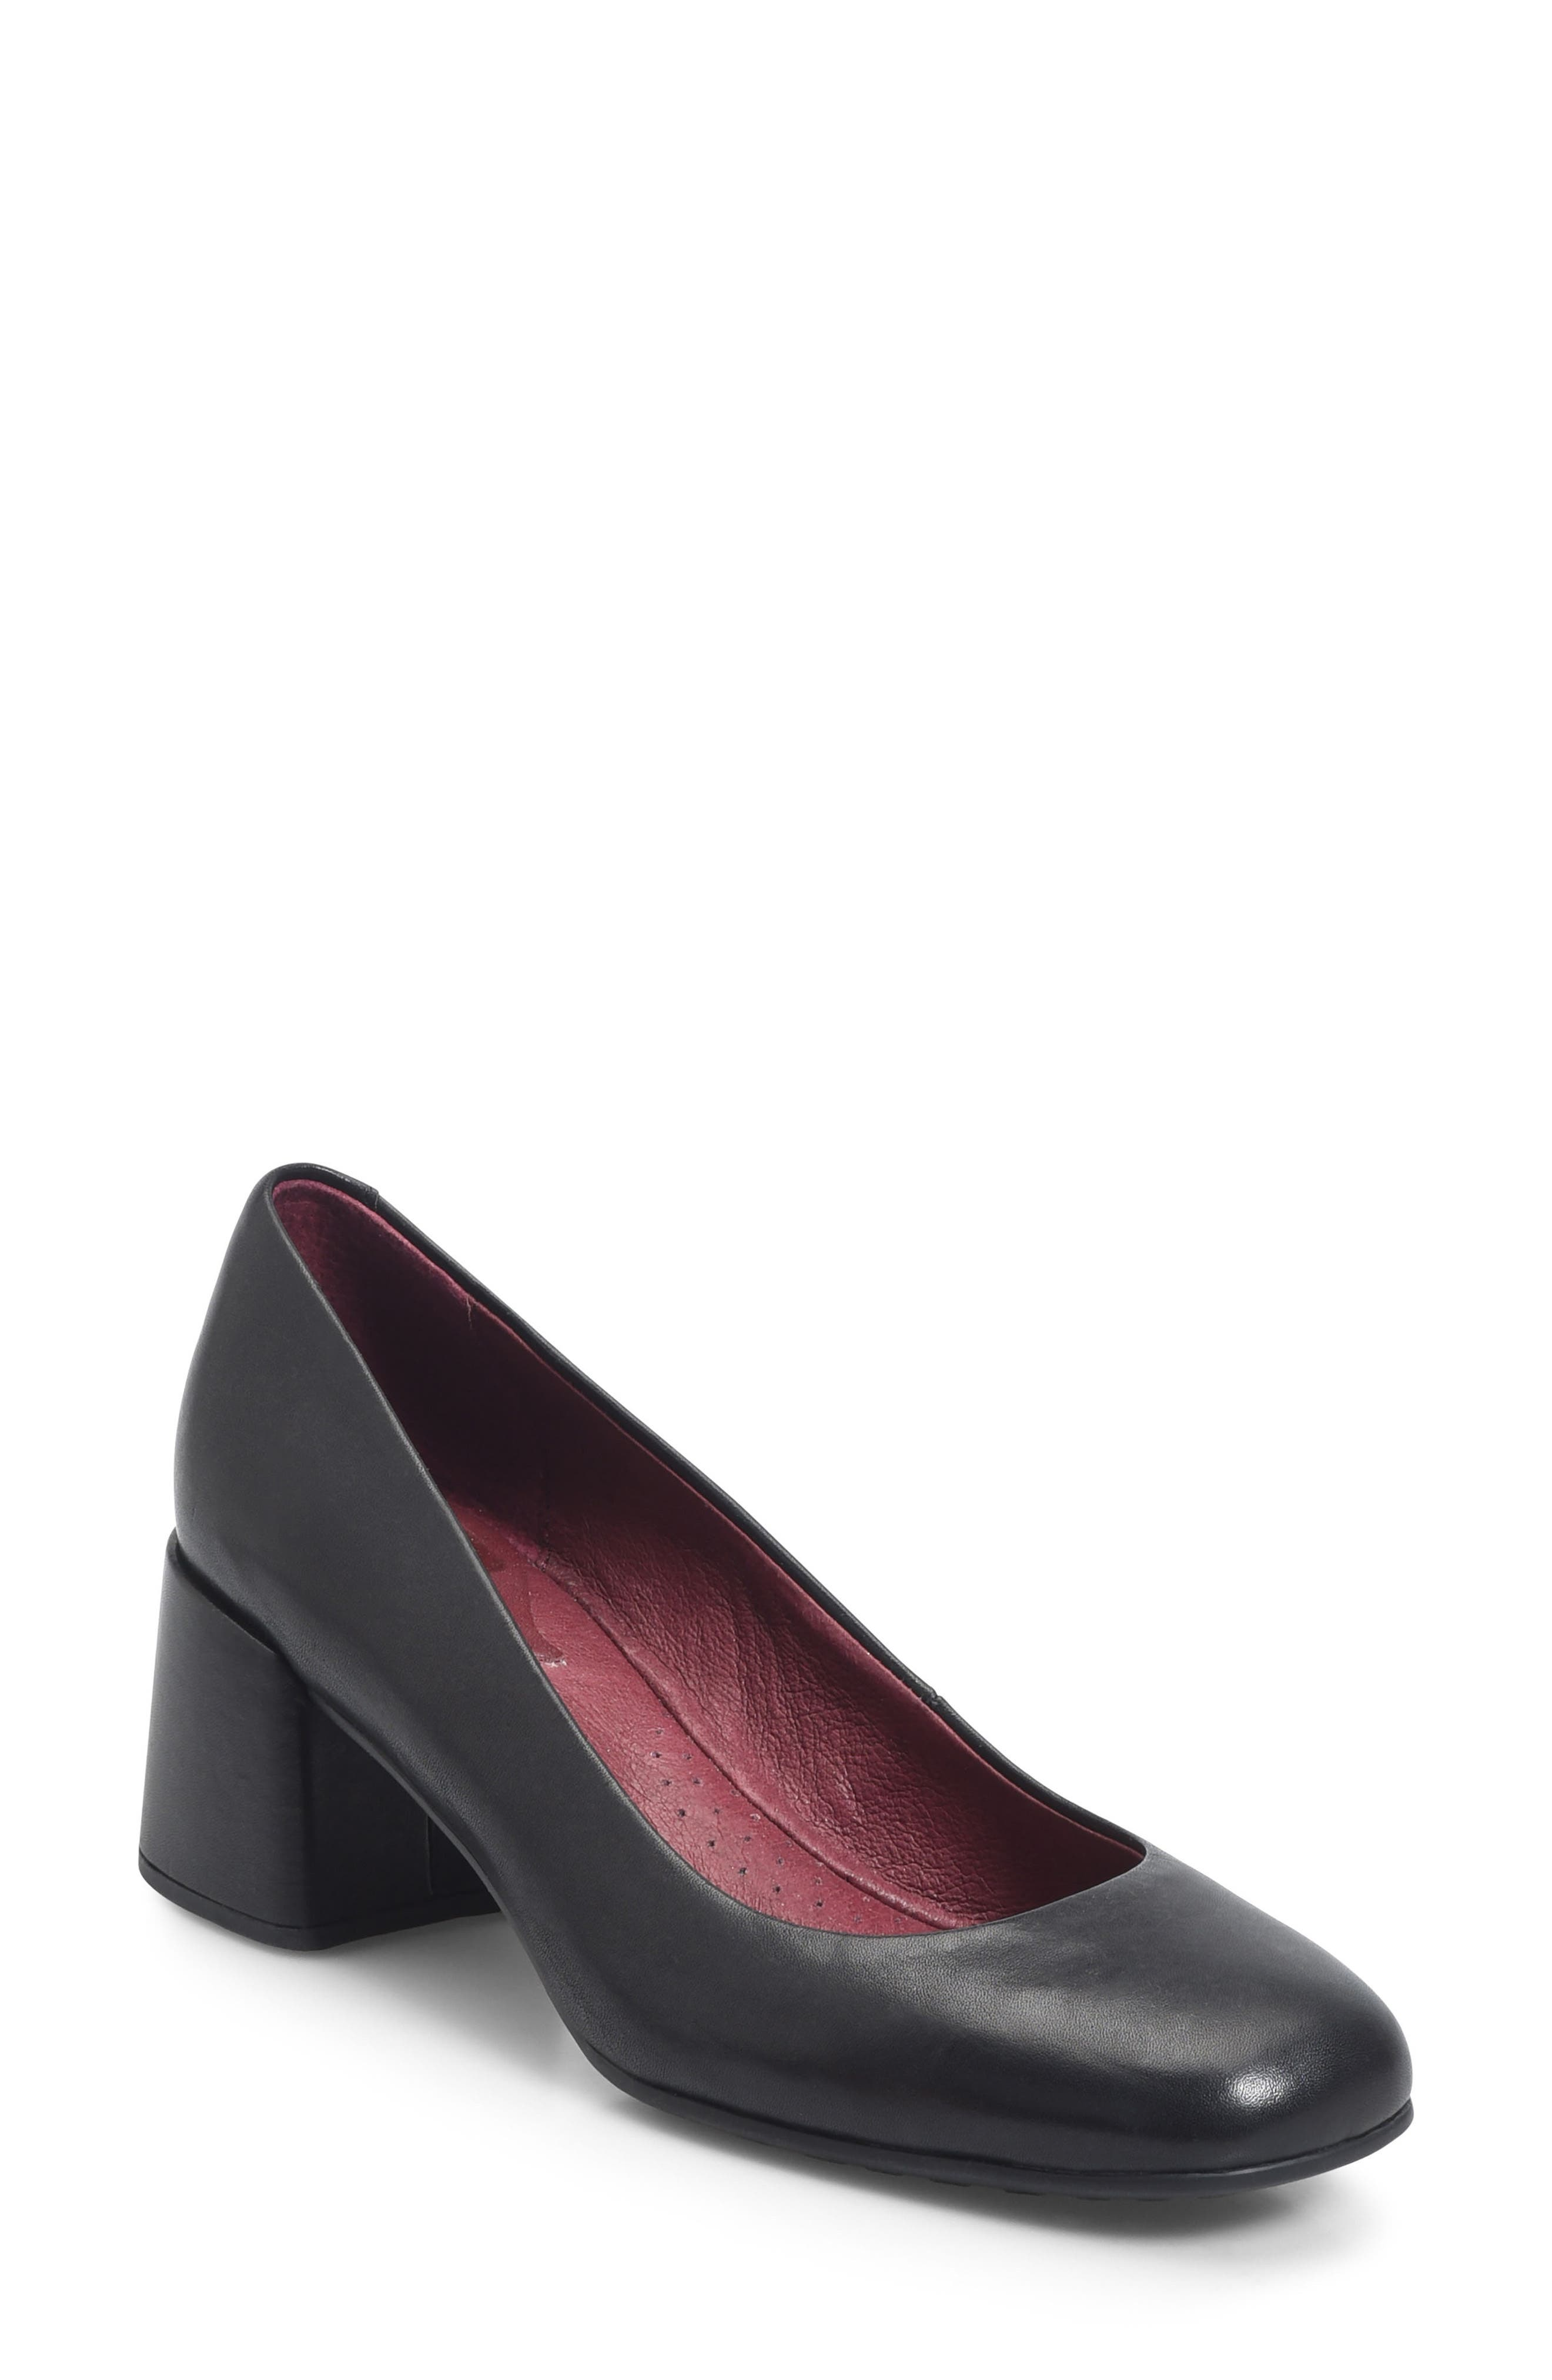 Magnolia Block Heel Pump,                         Main,                         color, BLACK LEATHER